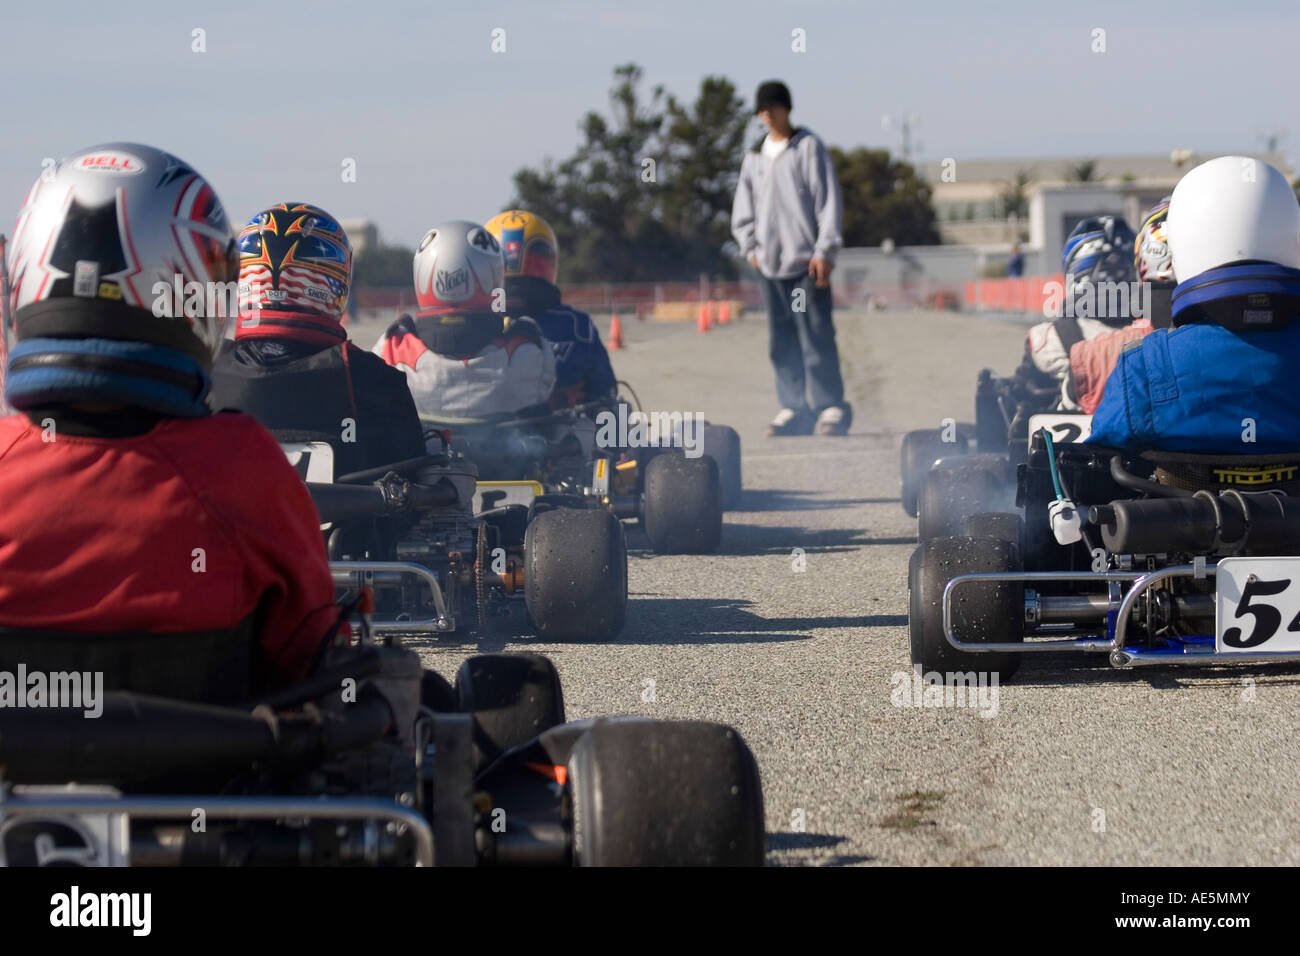 Go kart racers lined up with their engines running loudly at the starting line of a race on asphalt - Stock Image